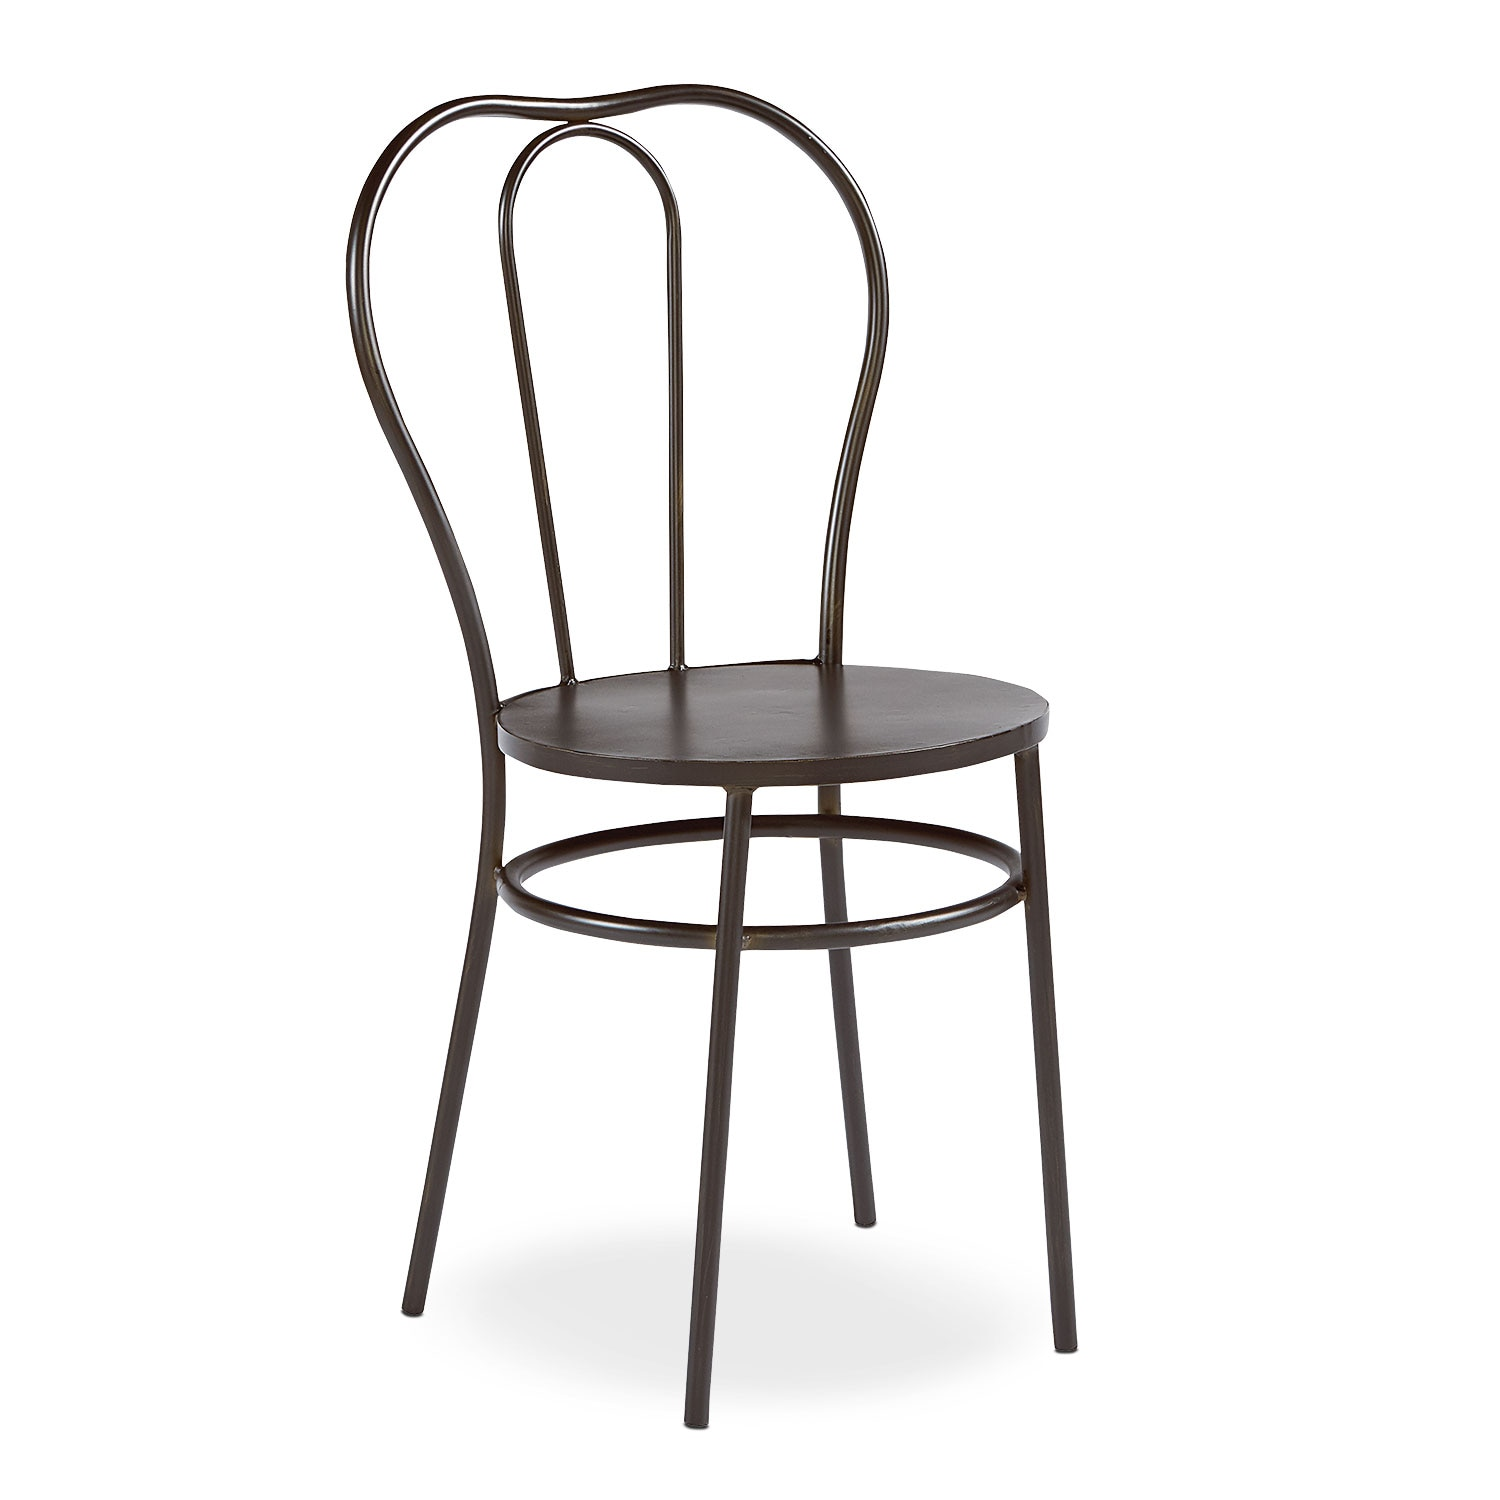 Dining Room Furniture - Bistro Chair - Blackened Bronze